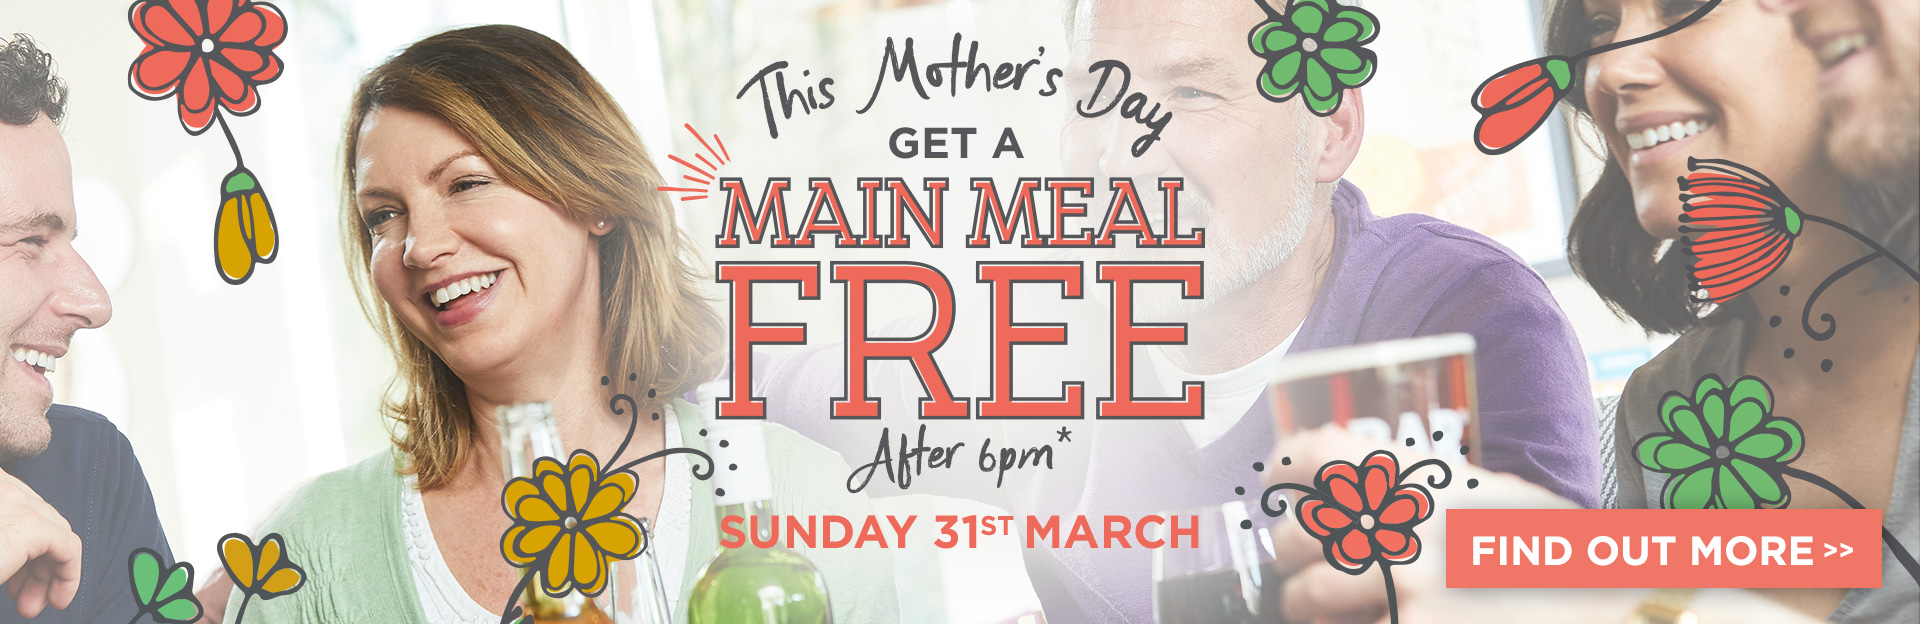 Mother's Day at The Alma Inn